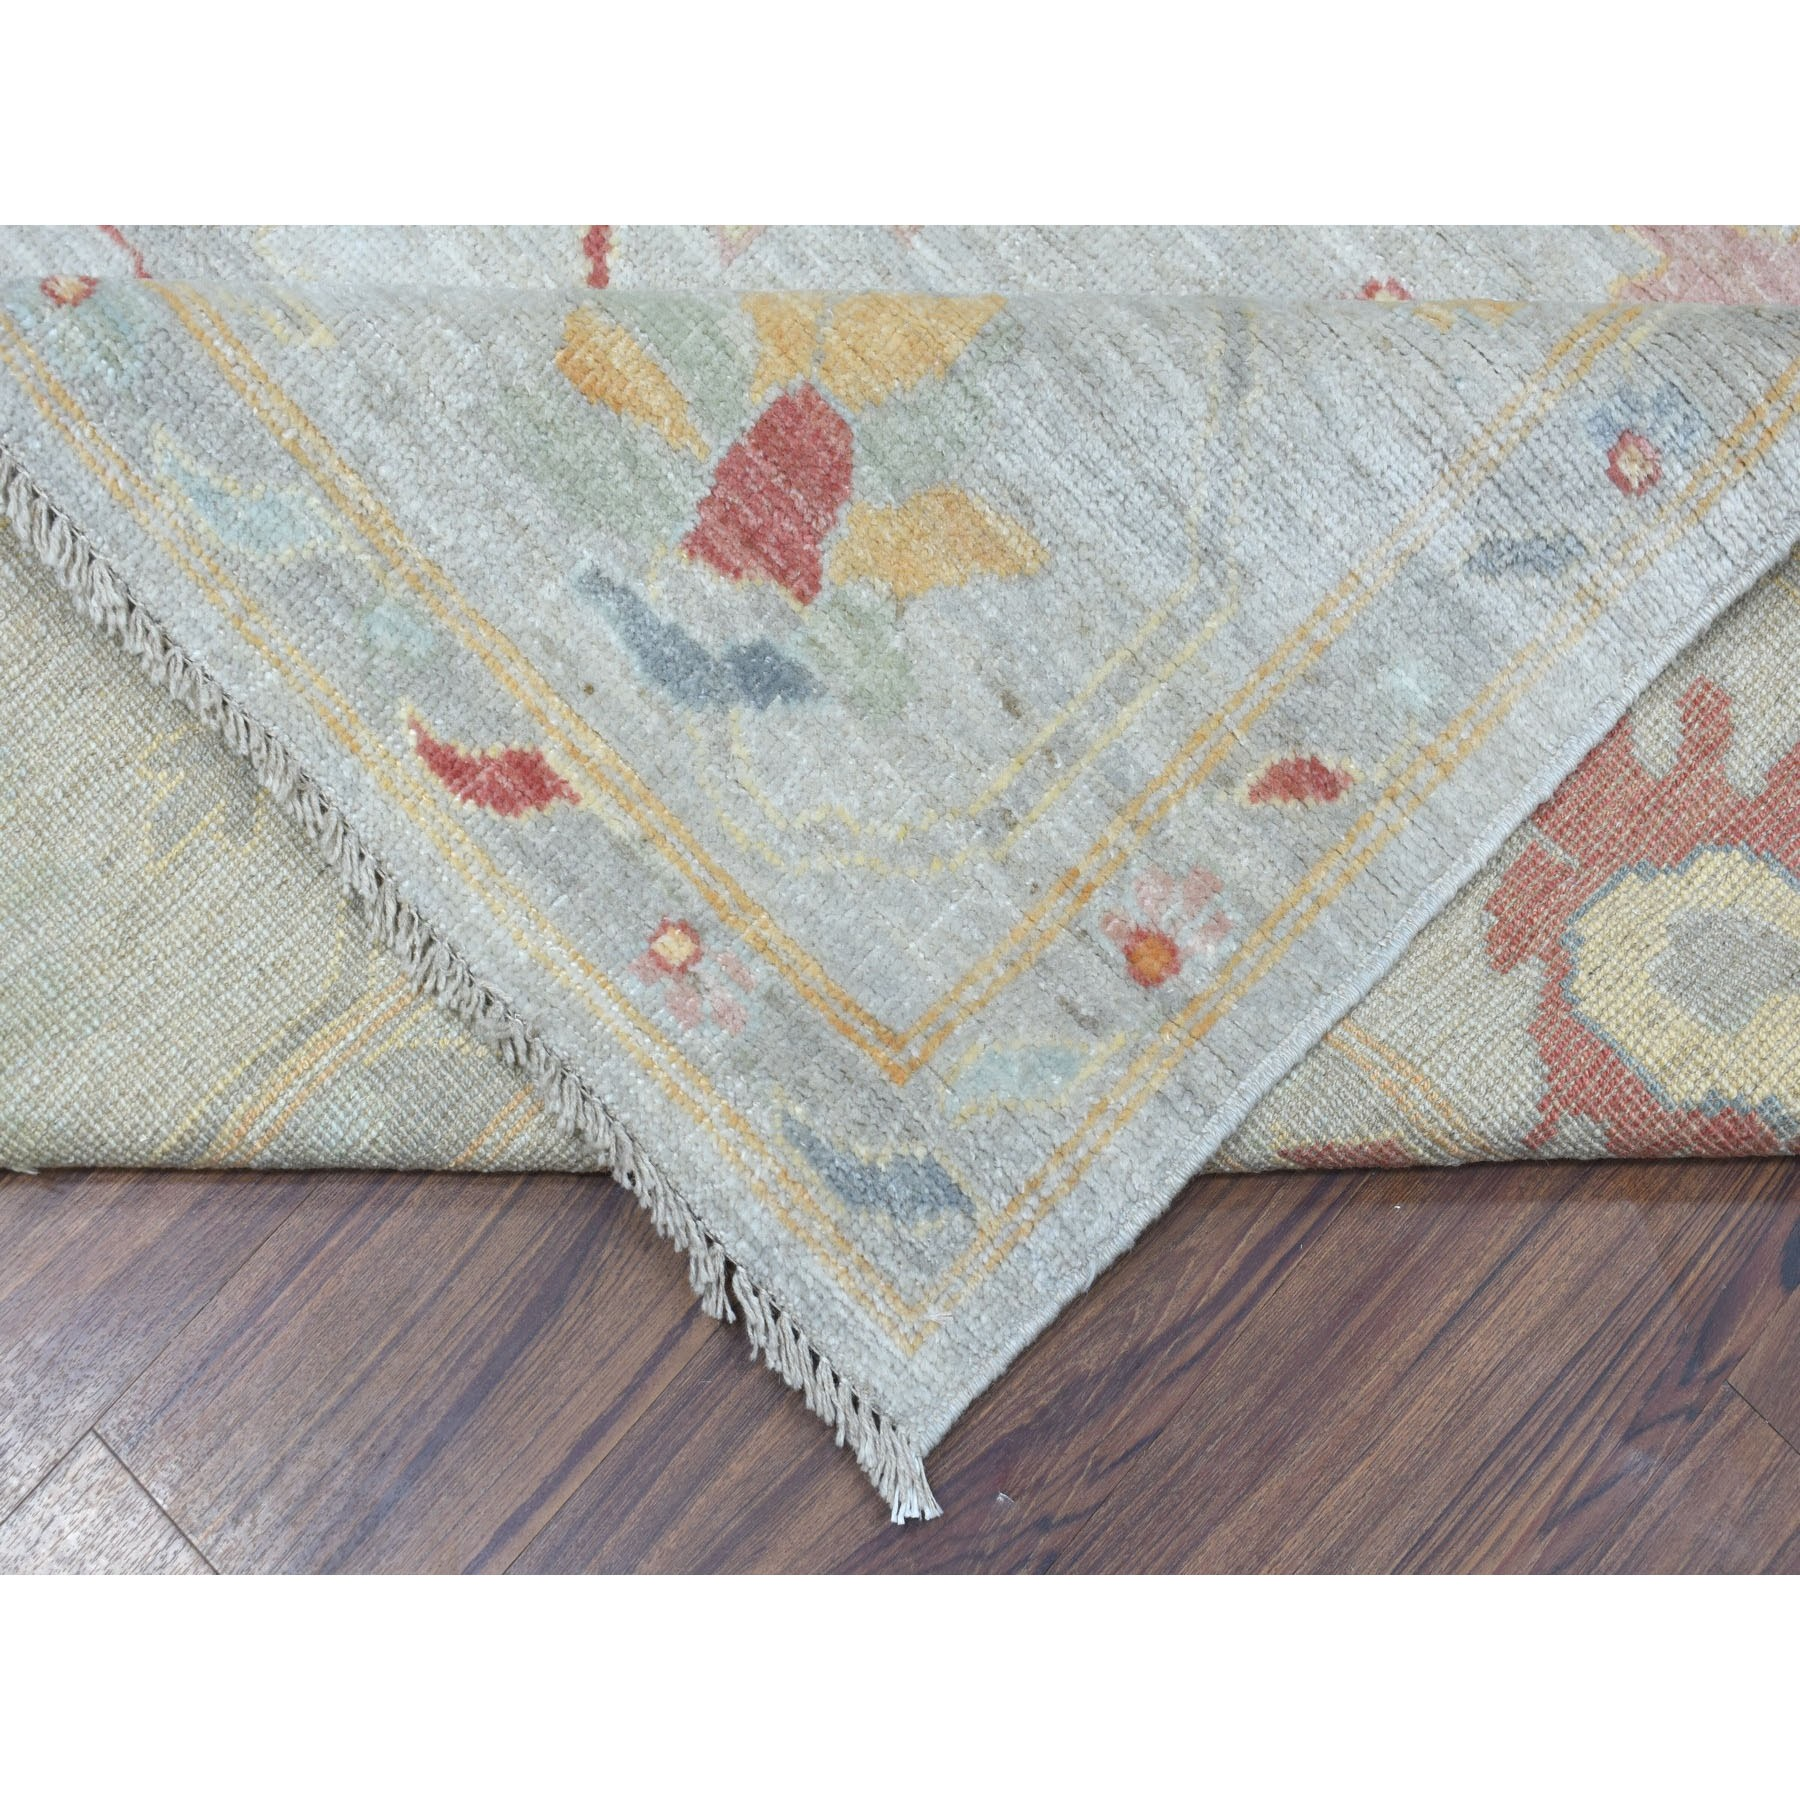 "9'1""x11'5"" Gray Angora Oushak with Soft Wool Hand Knotted Oriental Rug"